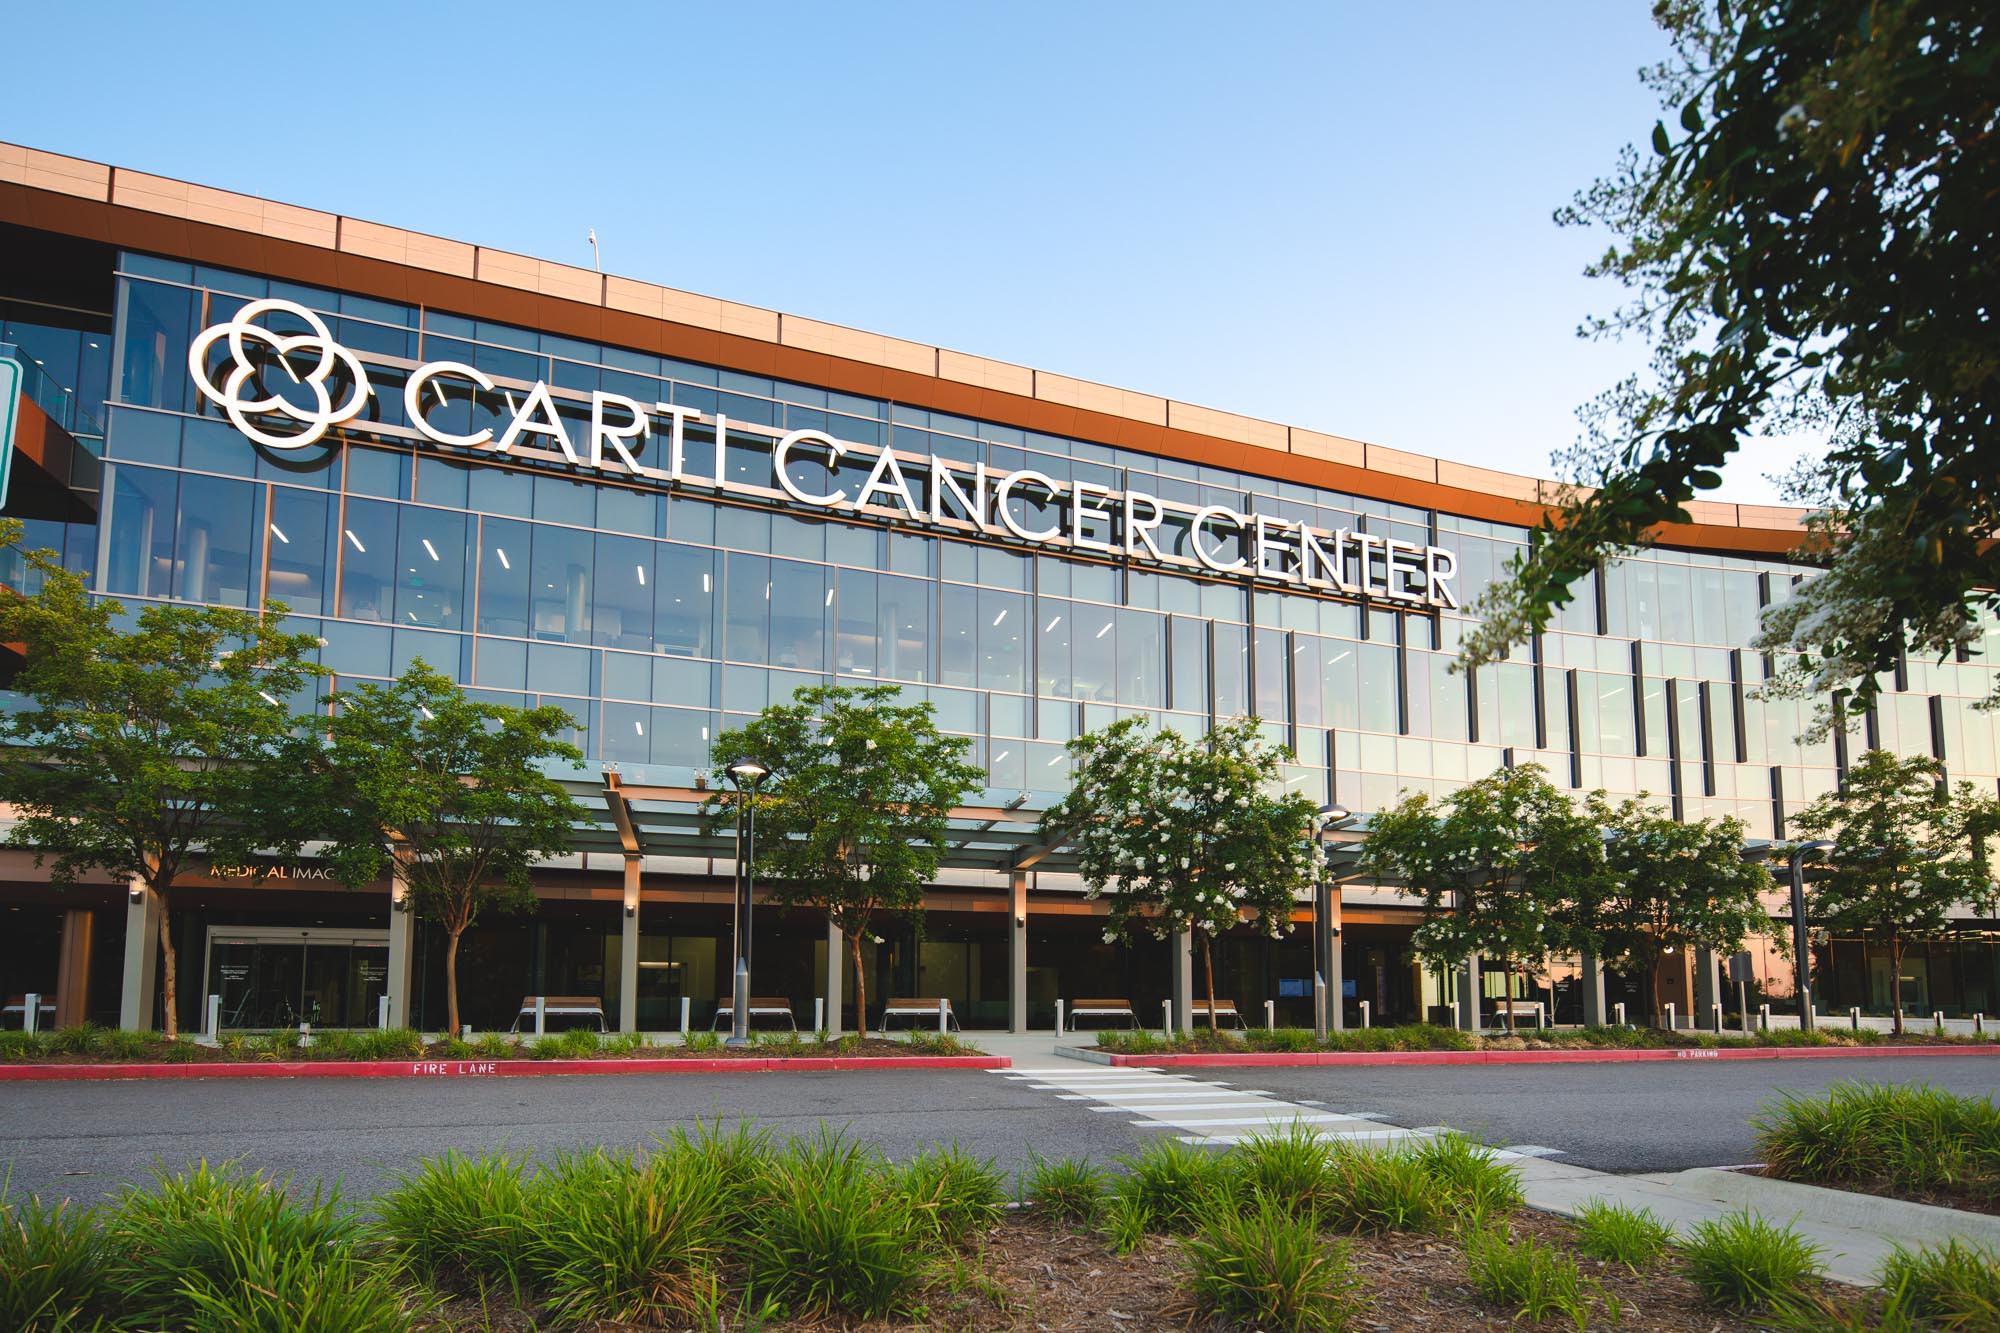 CARTI Cancer Center